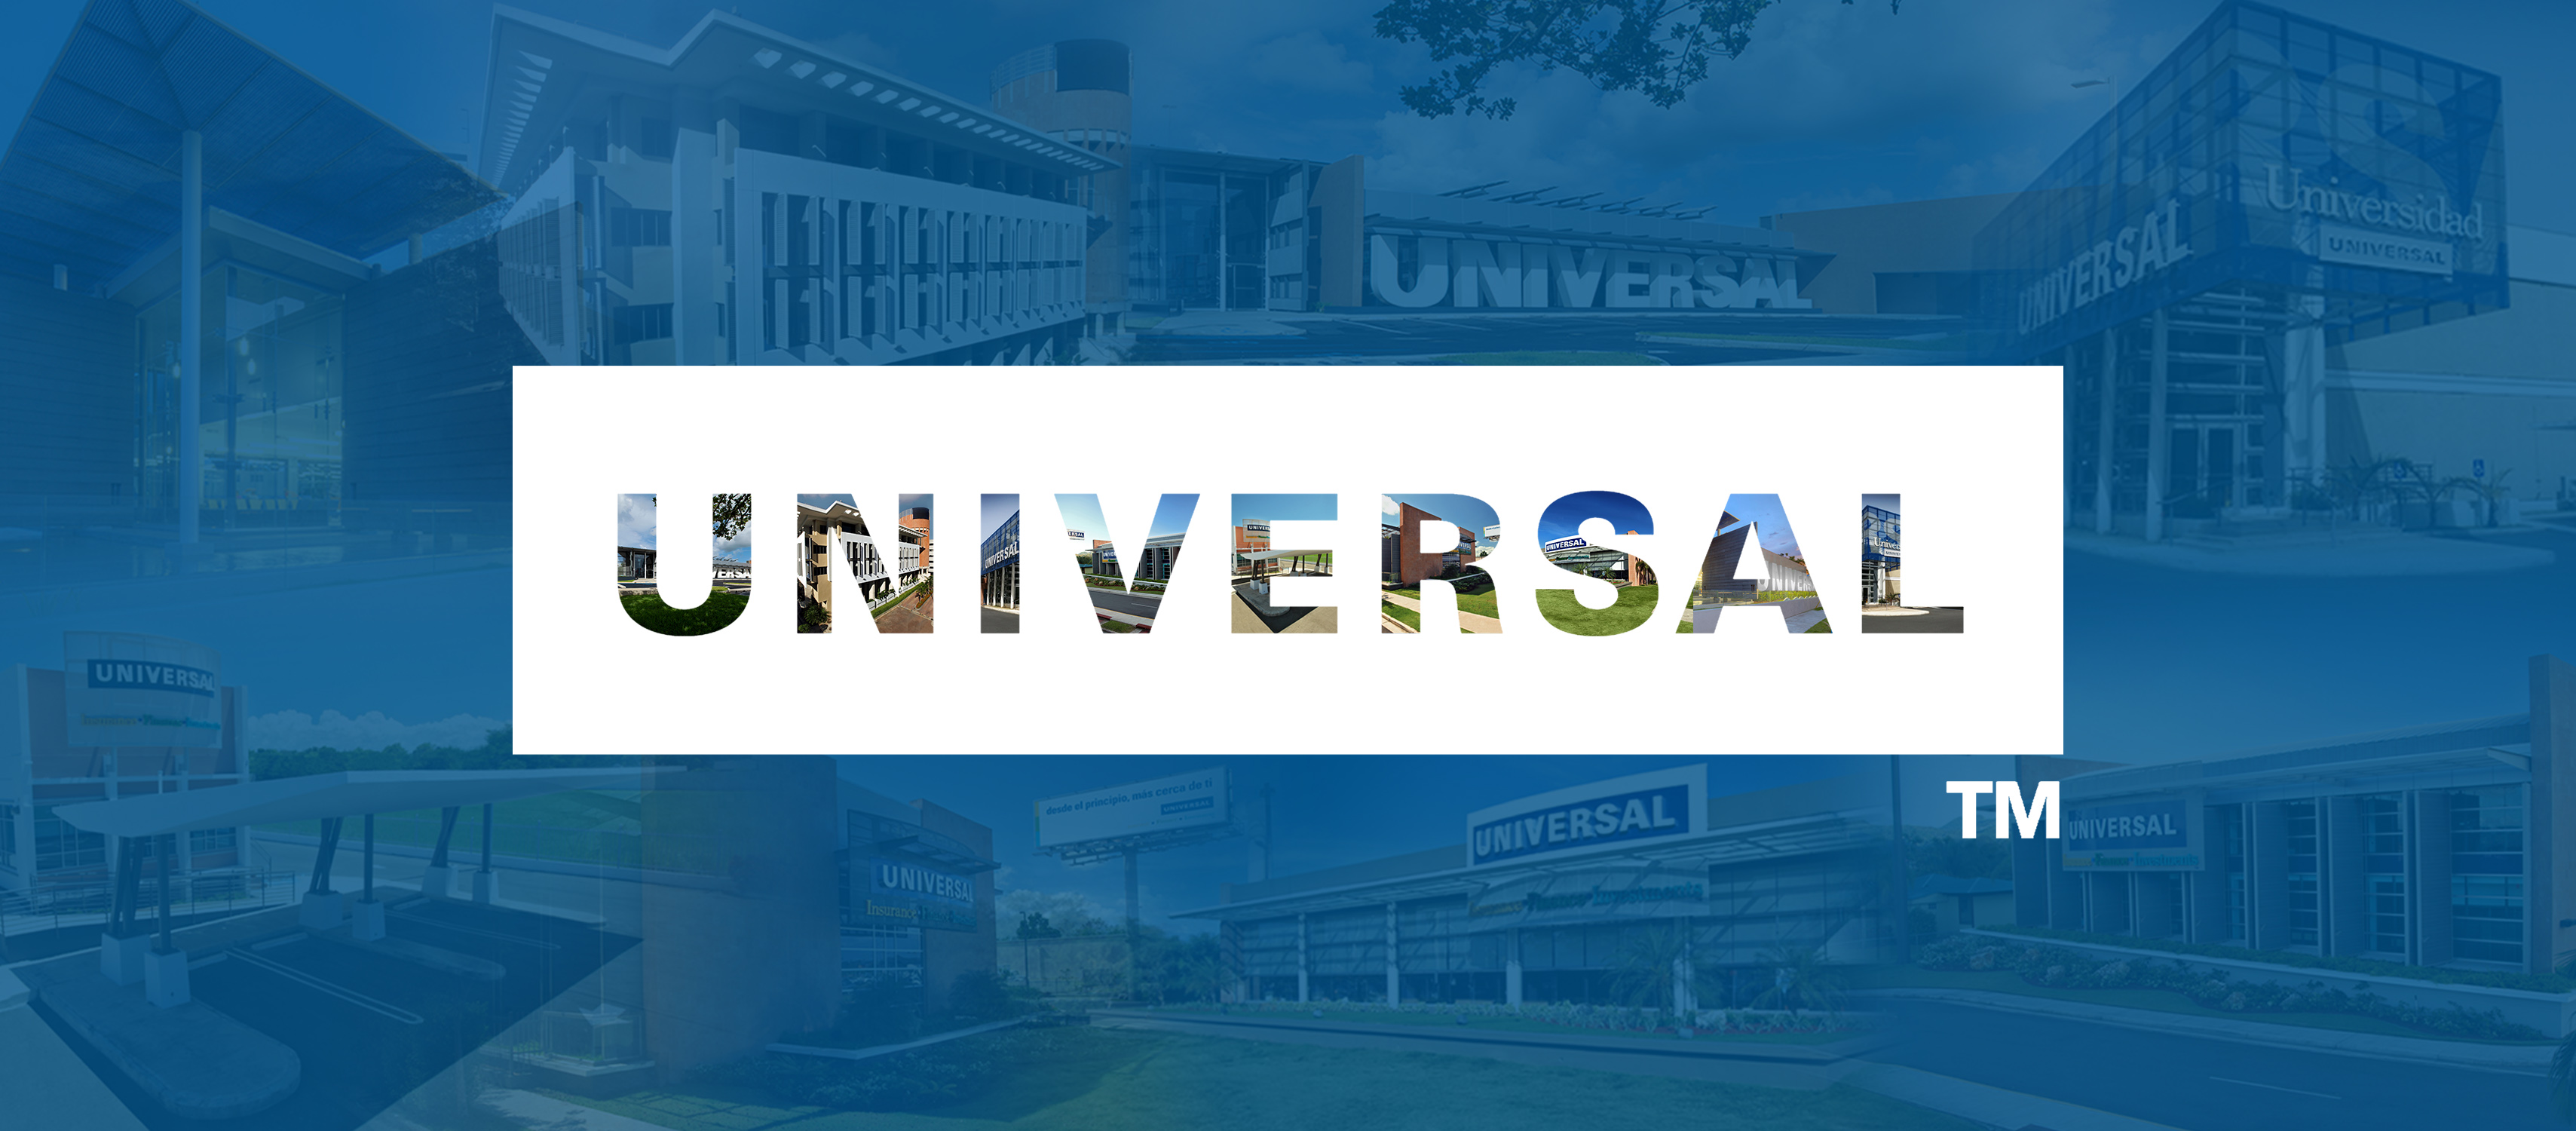 About Universal